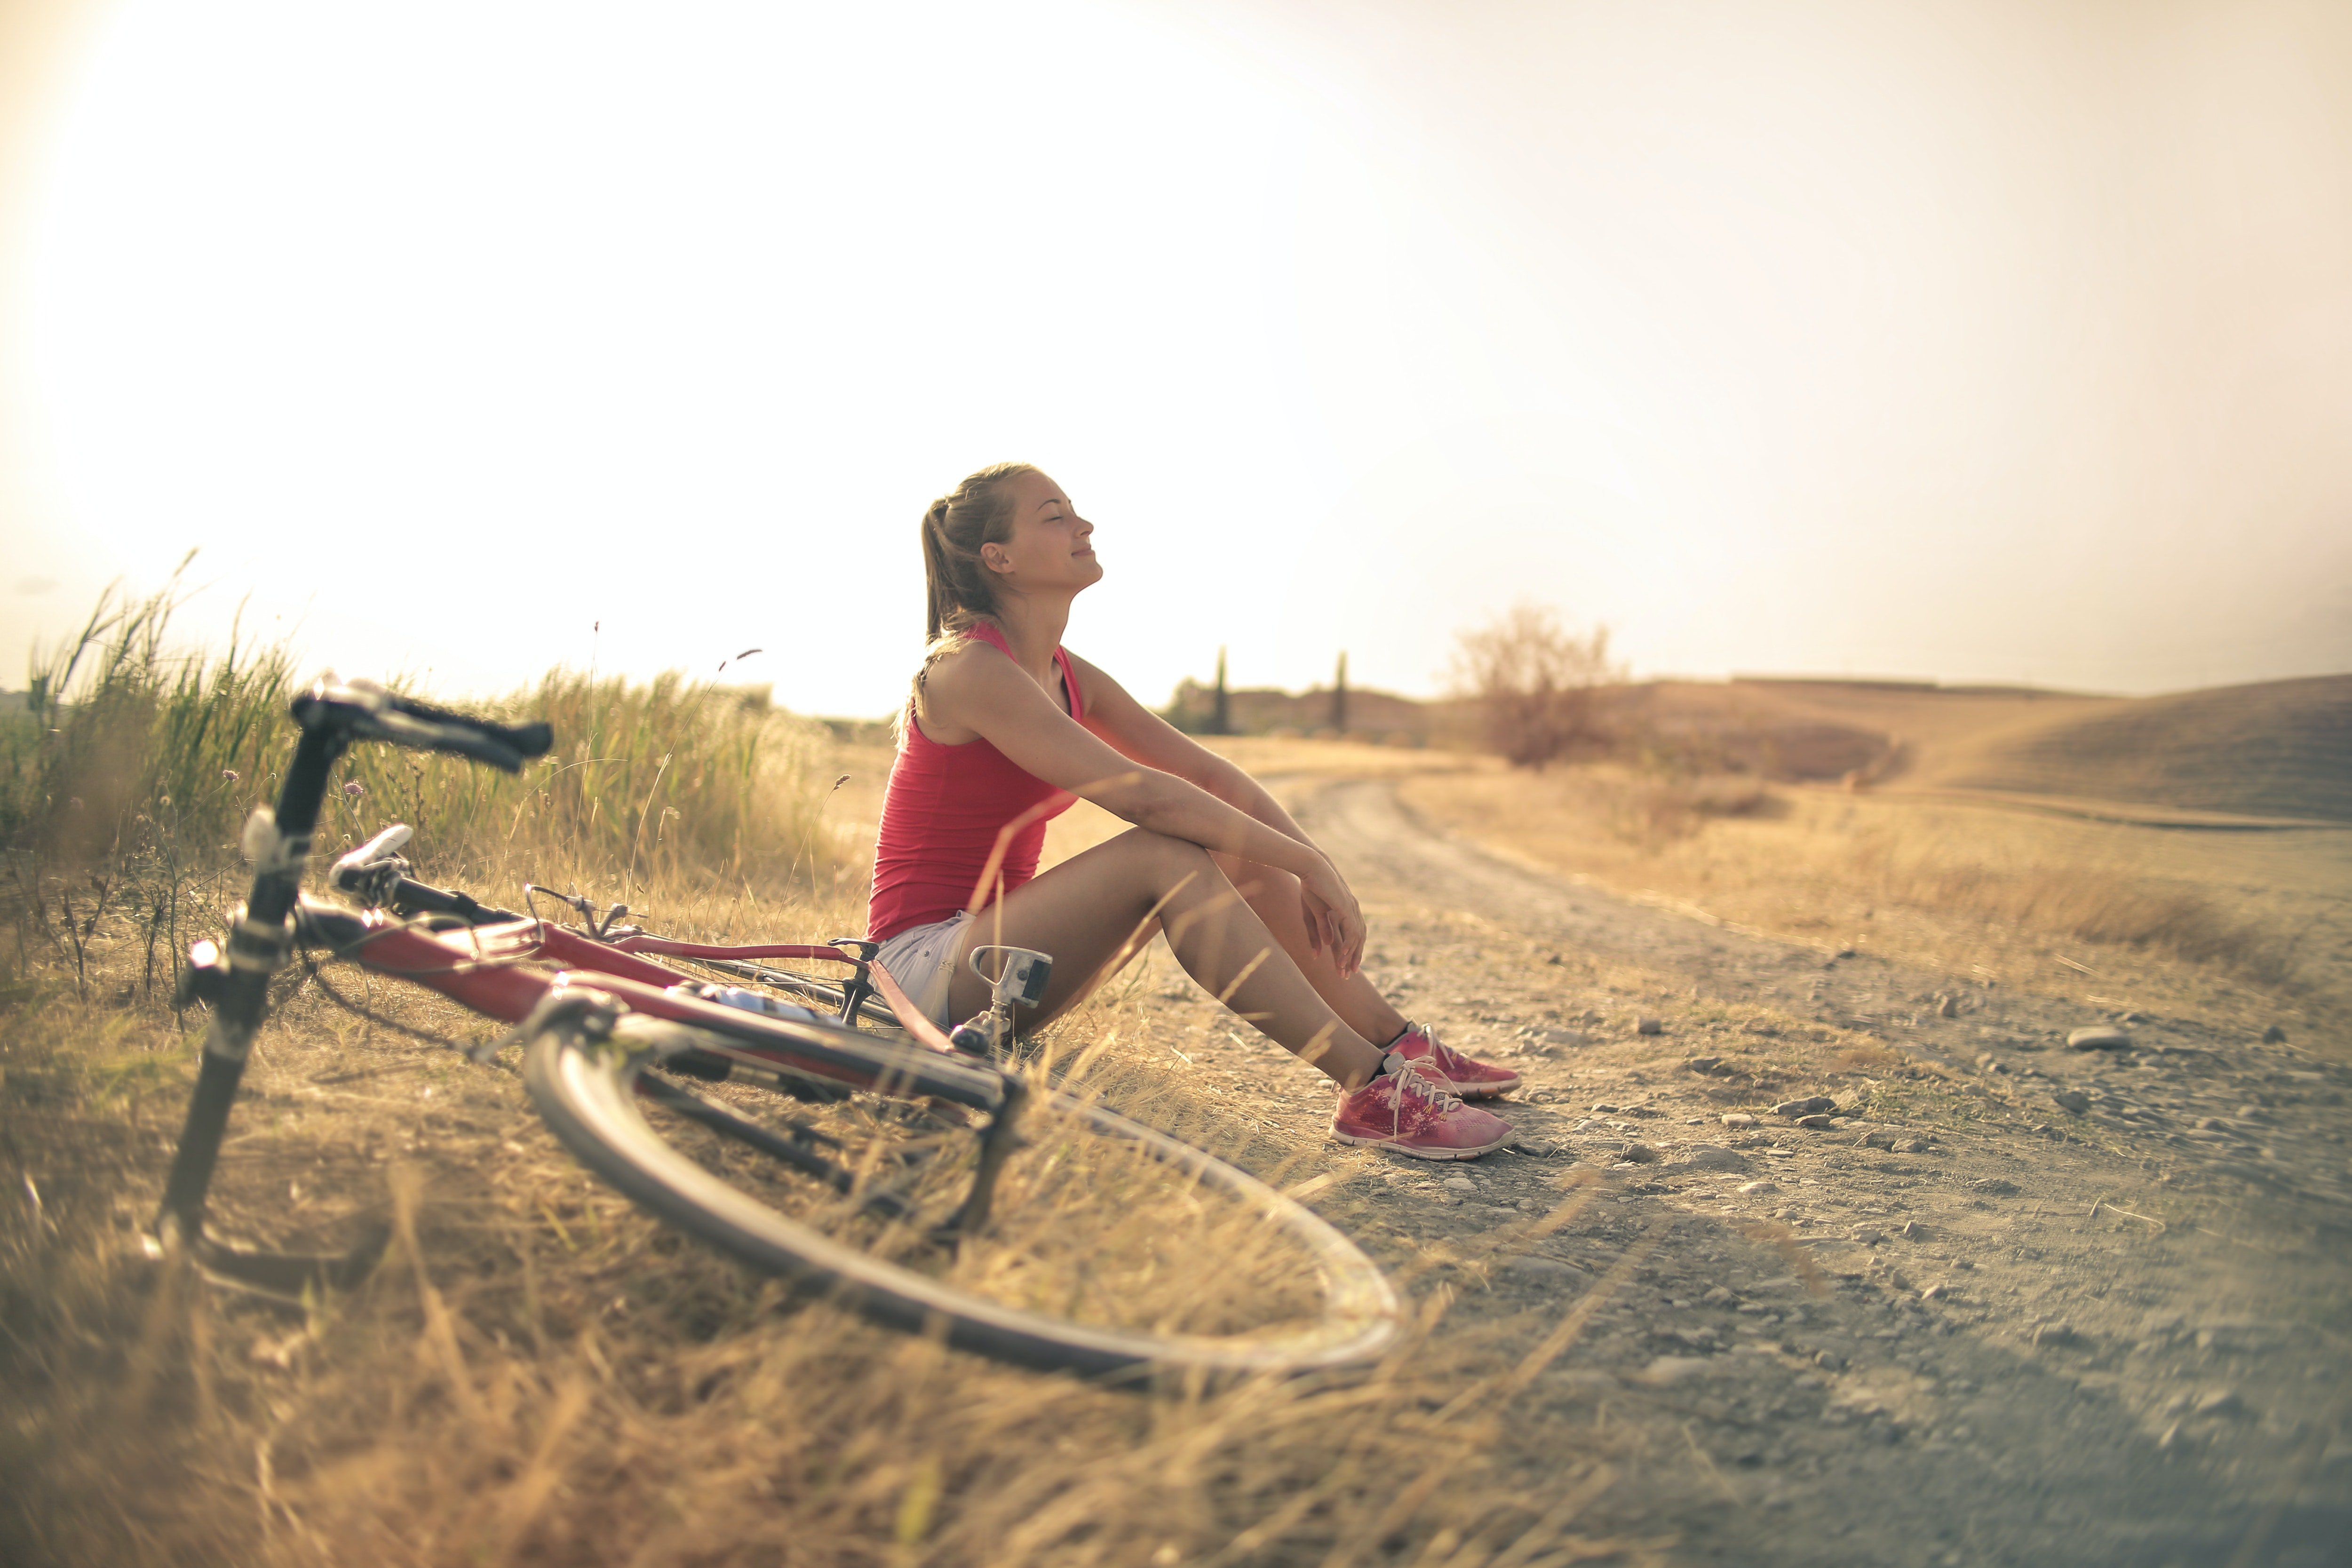 sportive-woman-with-bicycle-resting-on-countryside-road-in-3771836